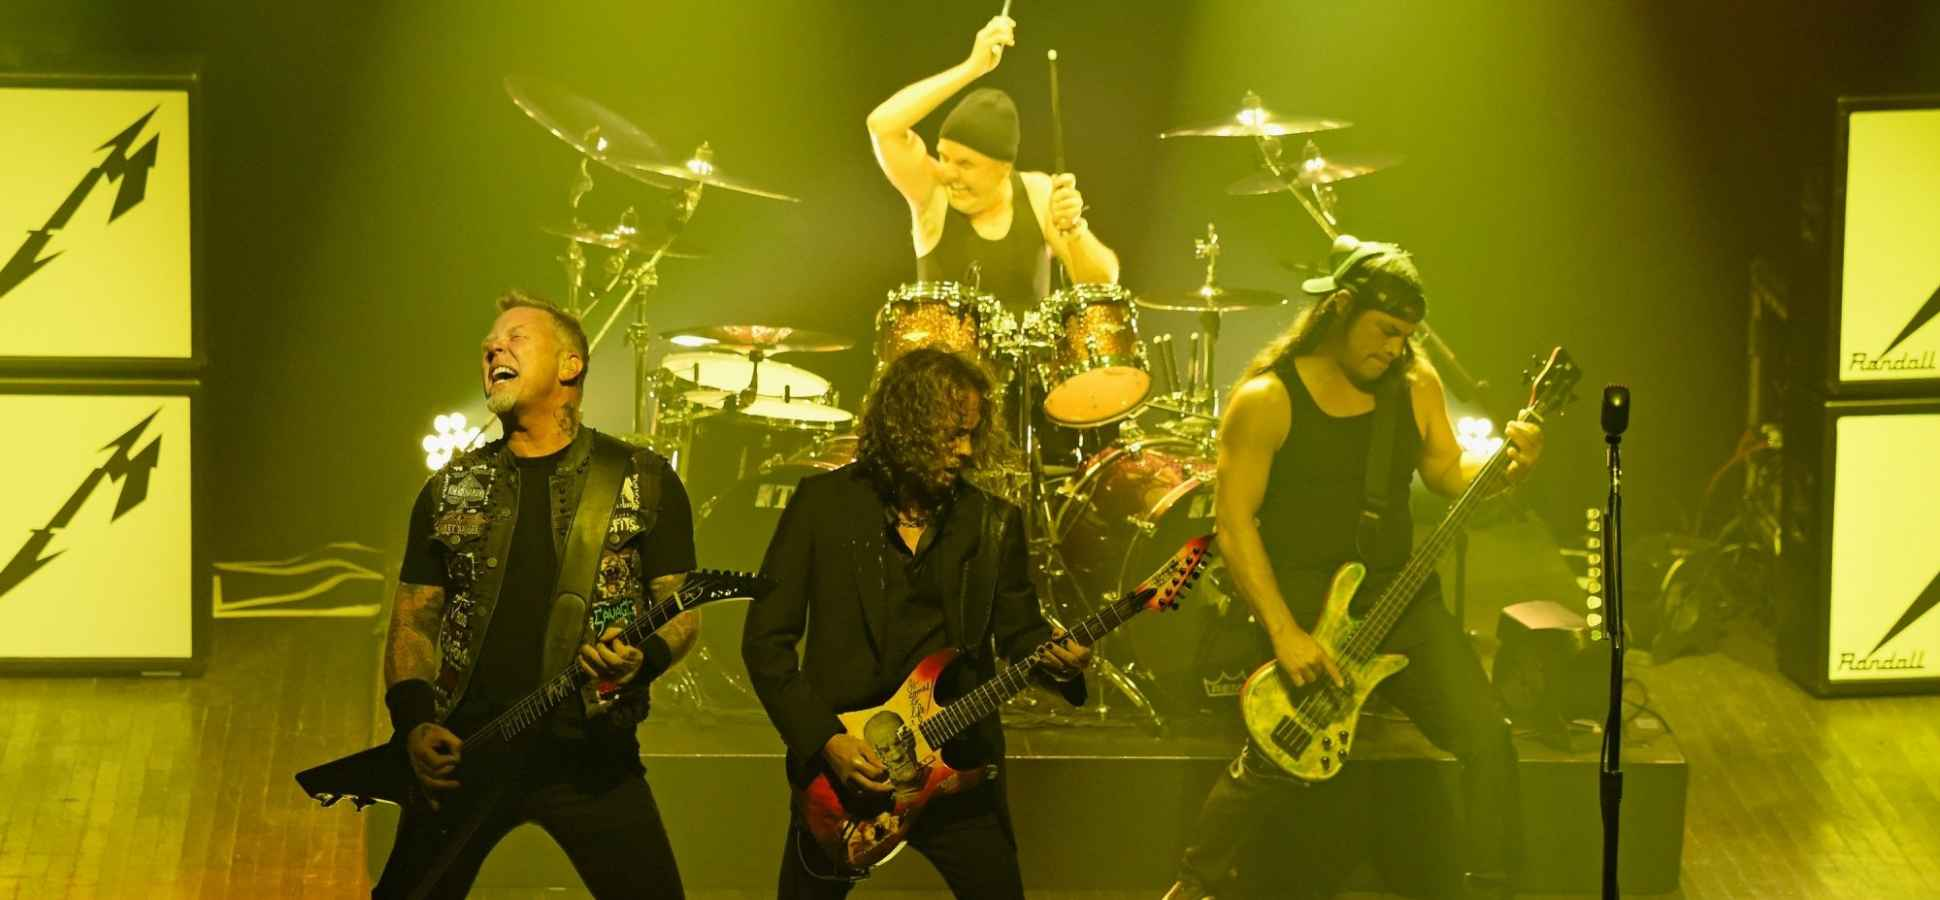 Does Your Business Need to Create 'Raving Fans'? Metallica